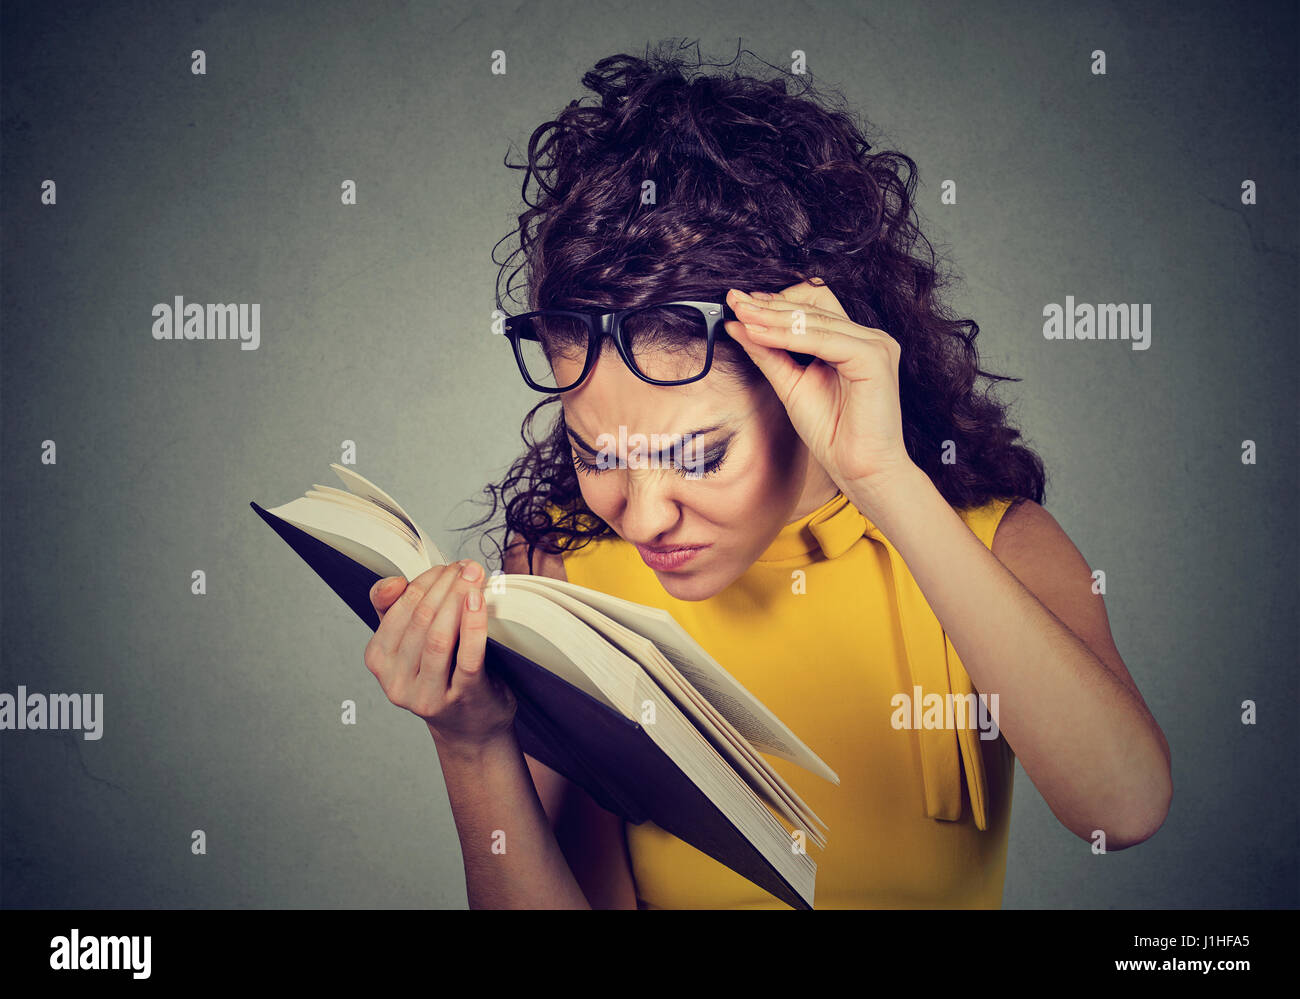 Young woman with glasses reading a book, having difficulties seeing text, has sight problems. Eyesight issues concept. - Stock Image